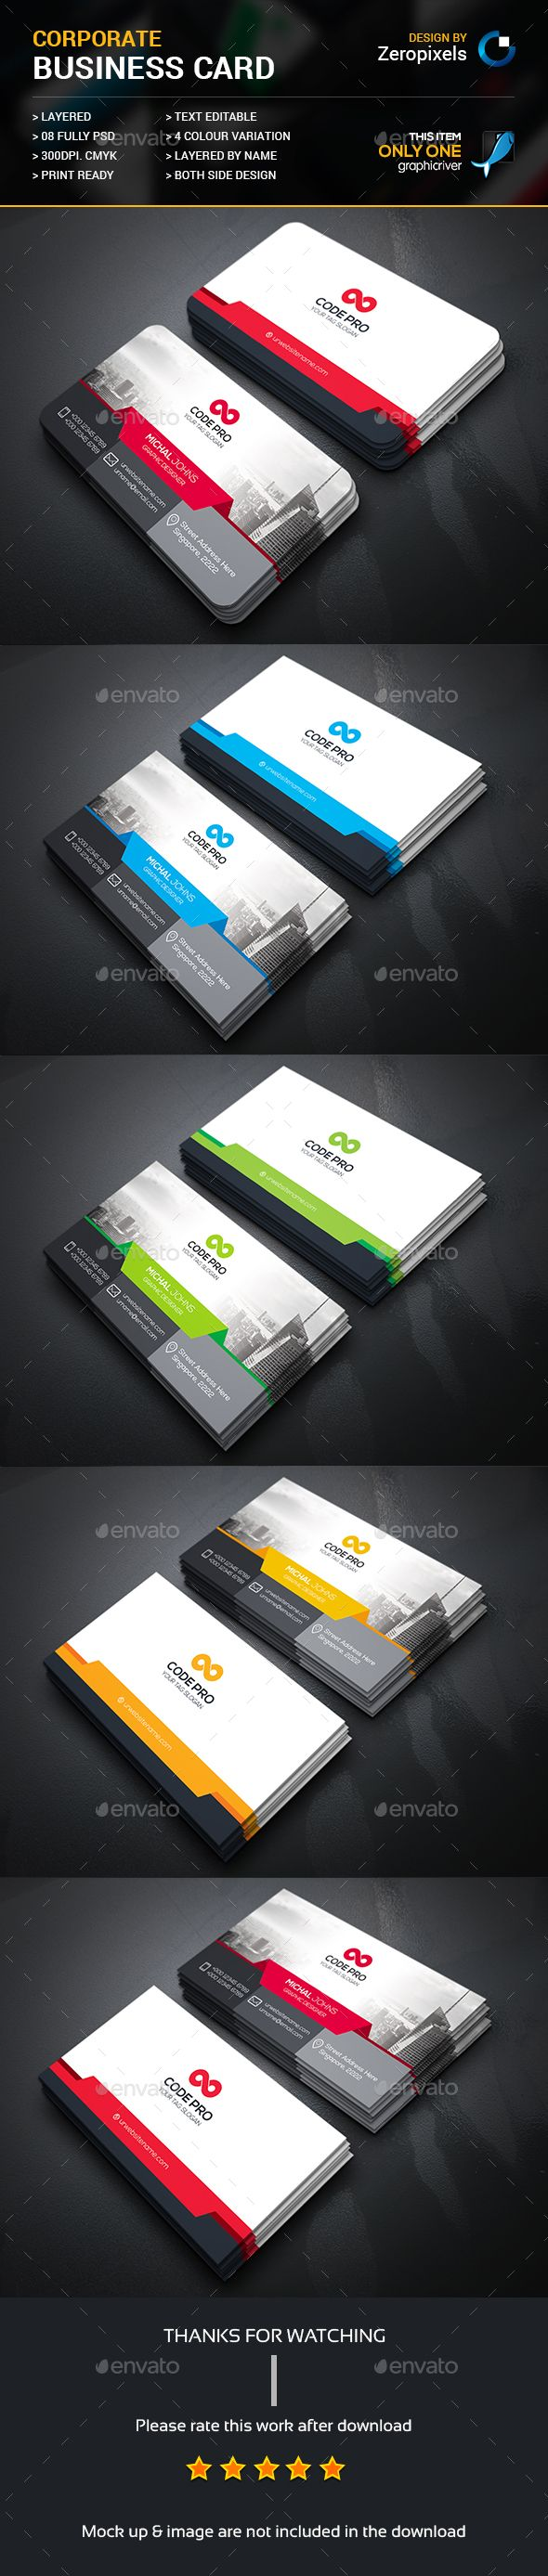 Best Kartvizitler Images On   Business Card Design